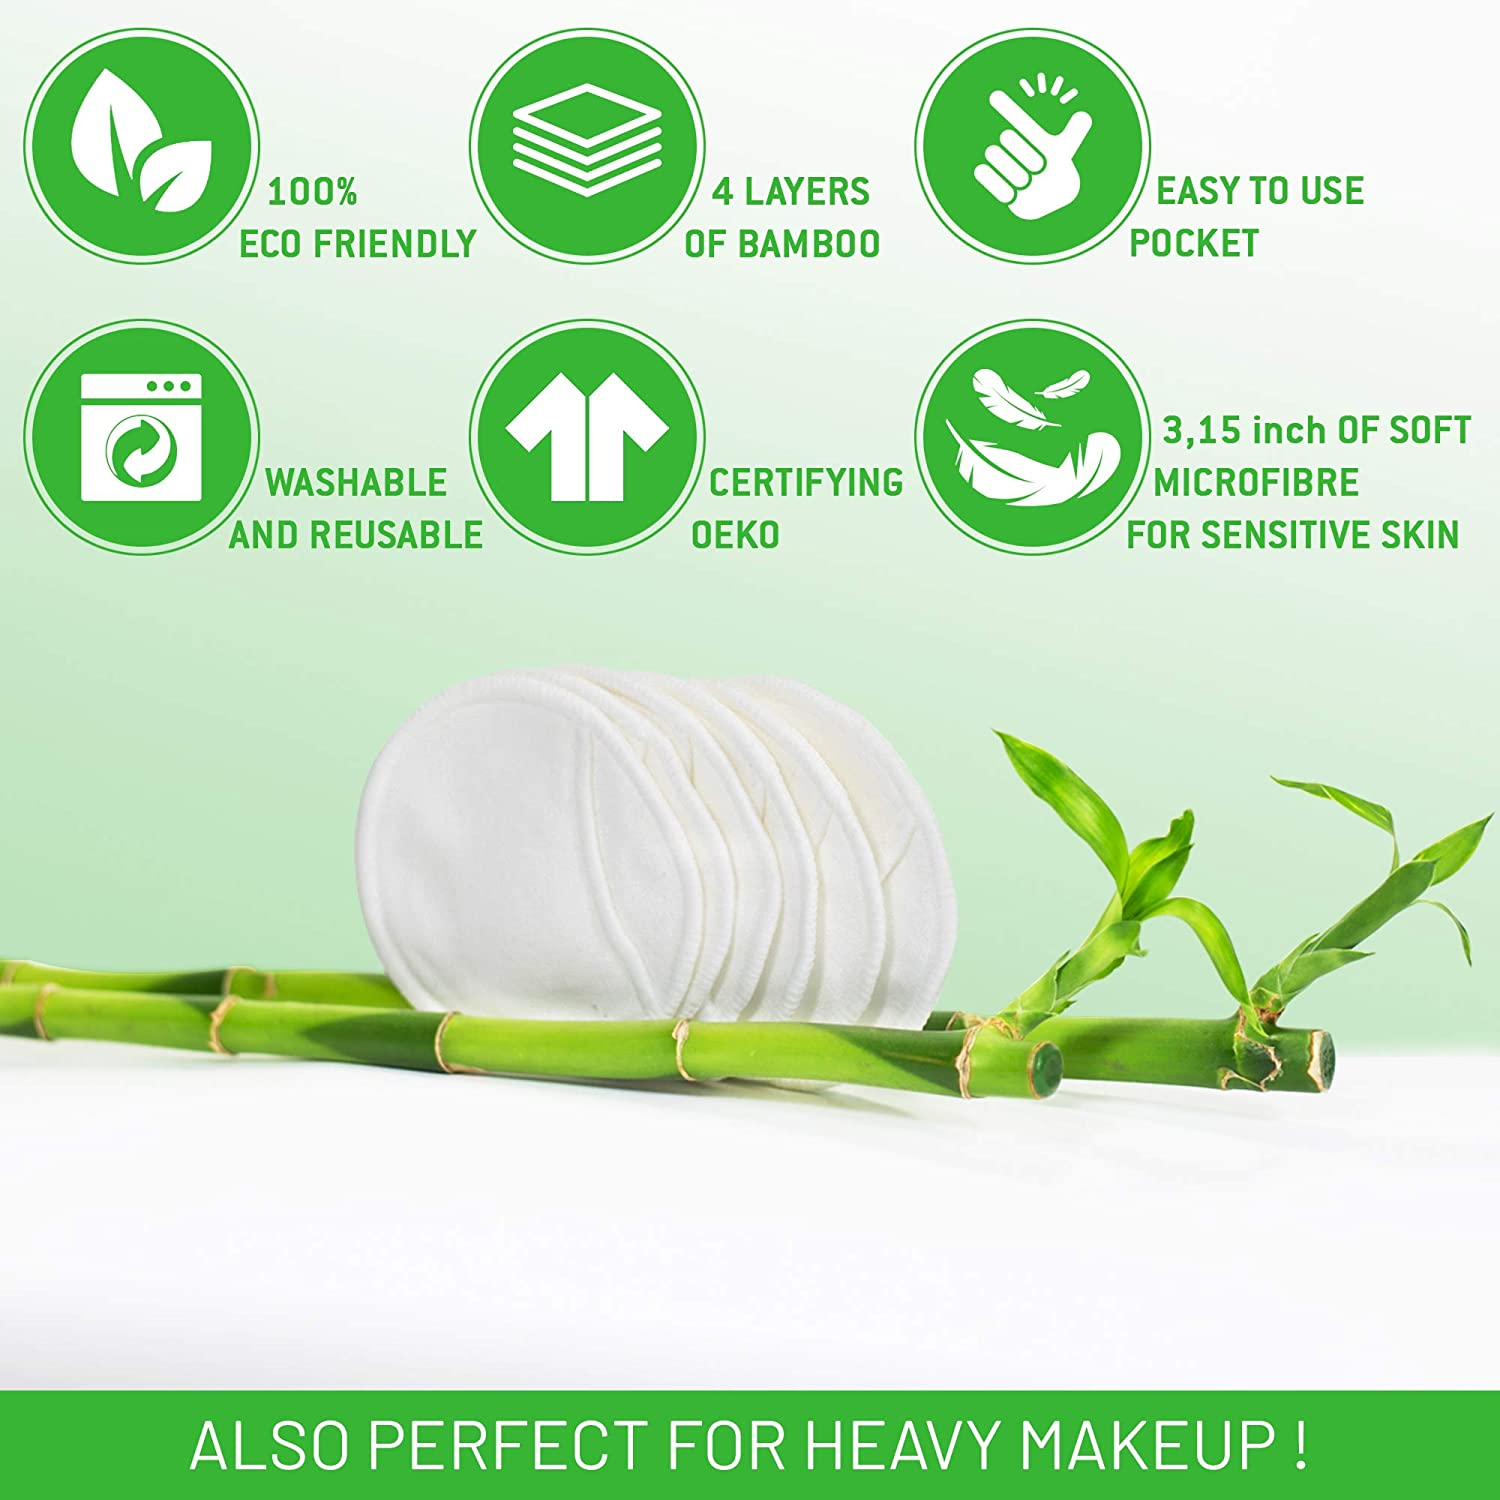 Washable cleaning pads with pocket Cleaning cloths for planets and zero facial waste with bamboo box Reusable cotton pads 21 bamboo units to remove makeup